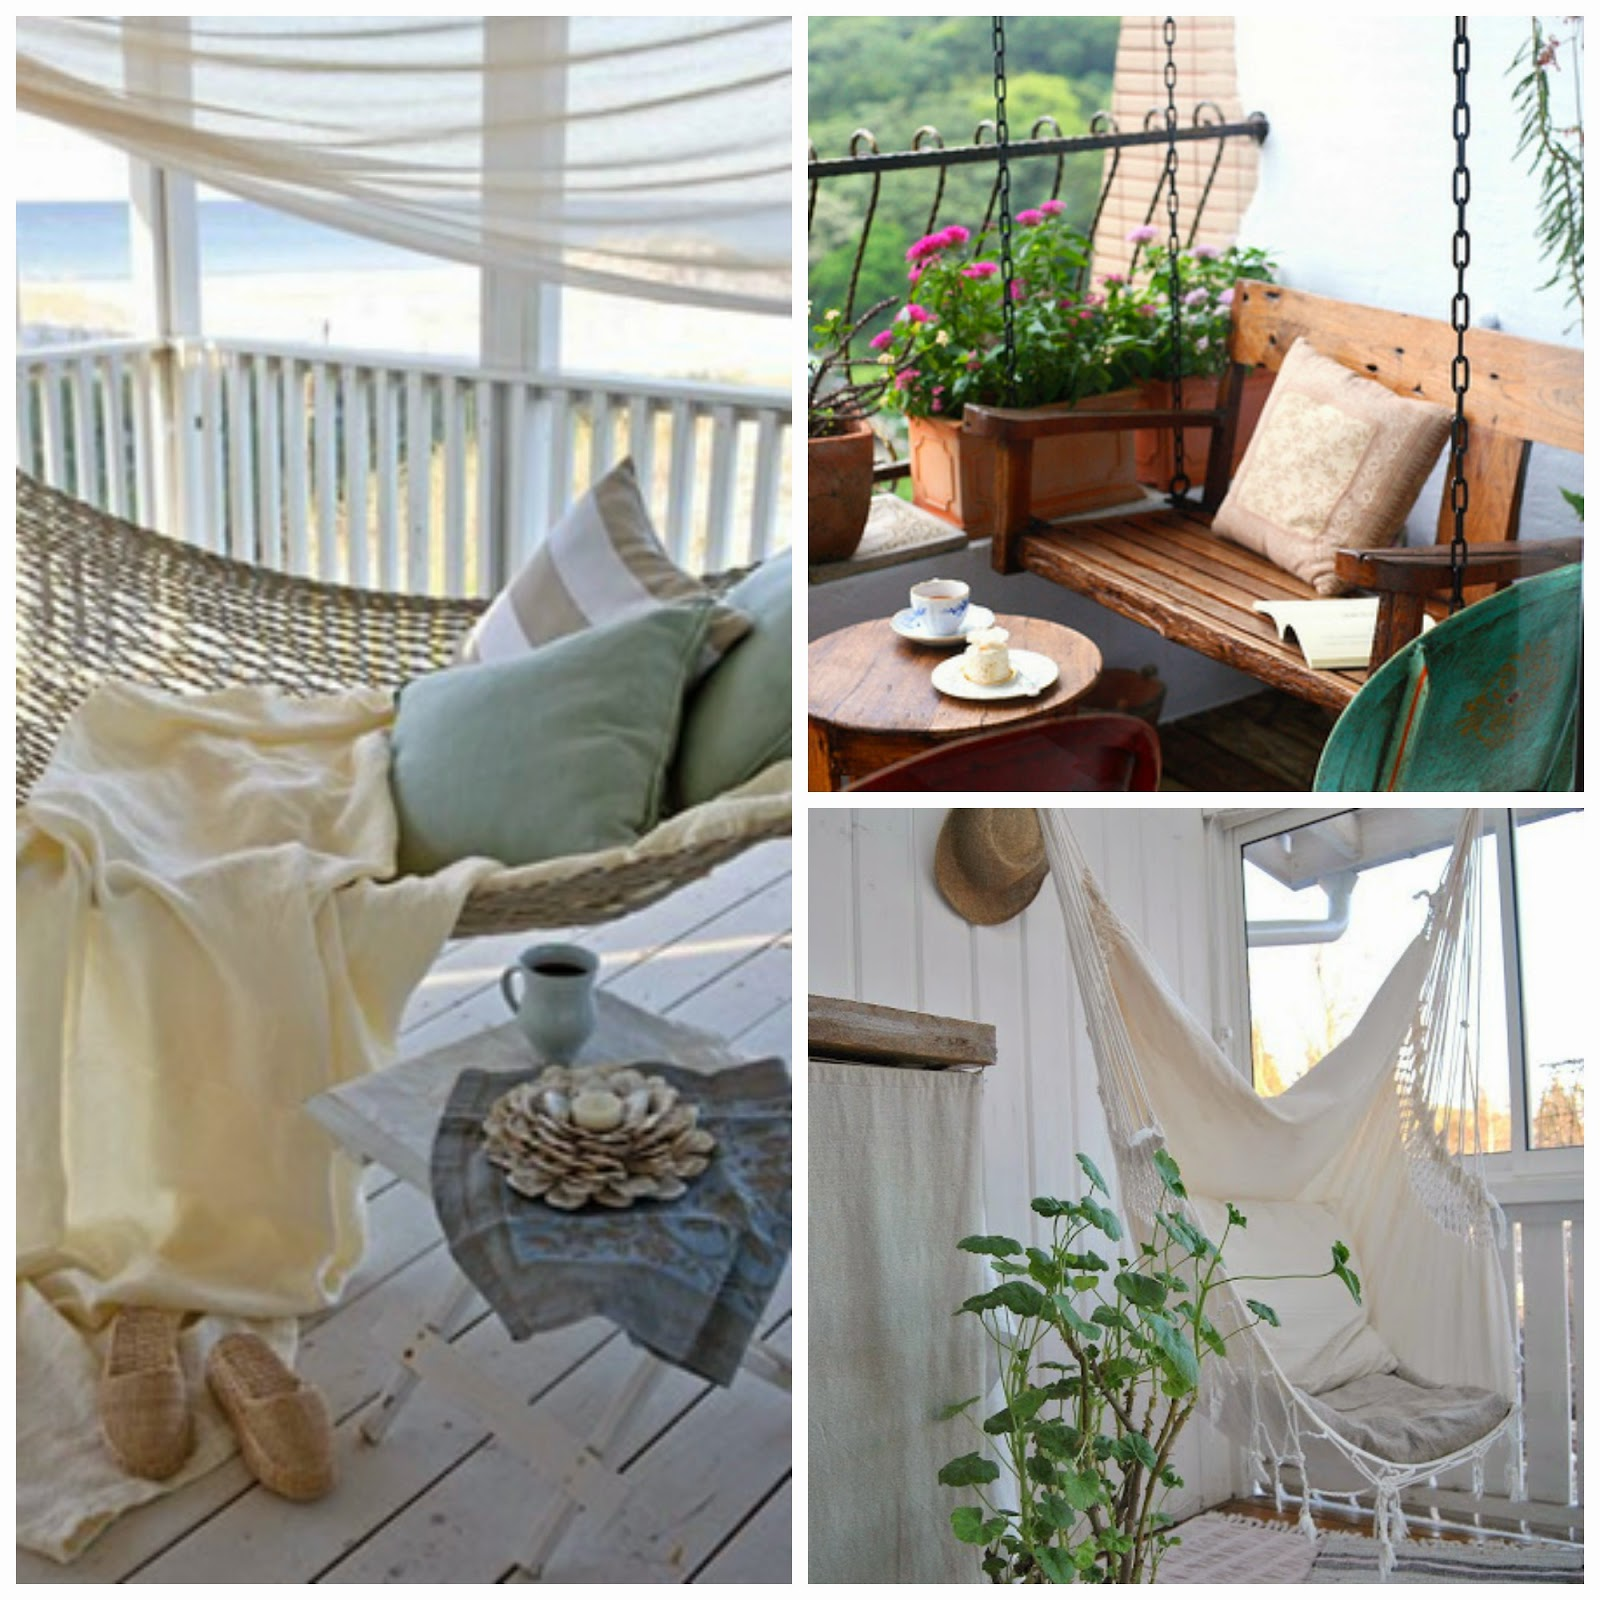 Magnolia styles 5 steps to decorate your small balcony or for Balcony hammock